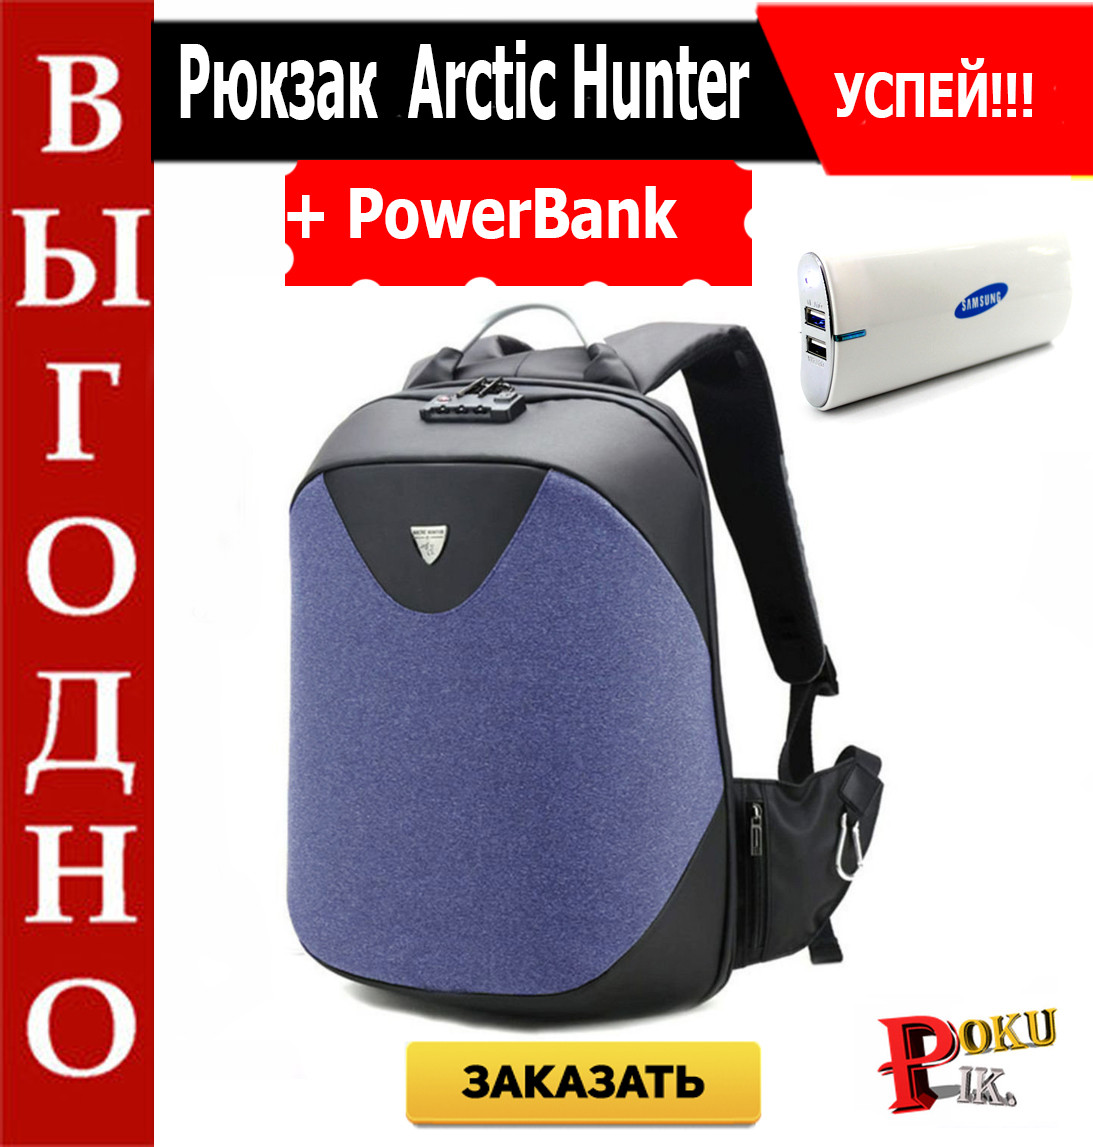 Городской рюкзак Arctic Hunter + PowerBank Samsung